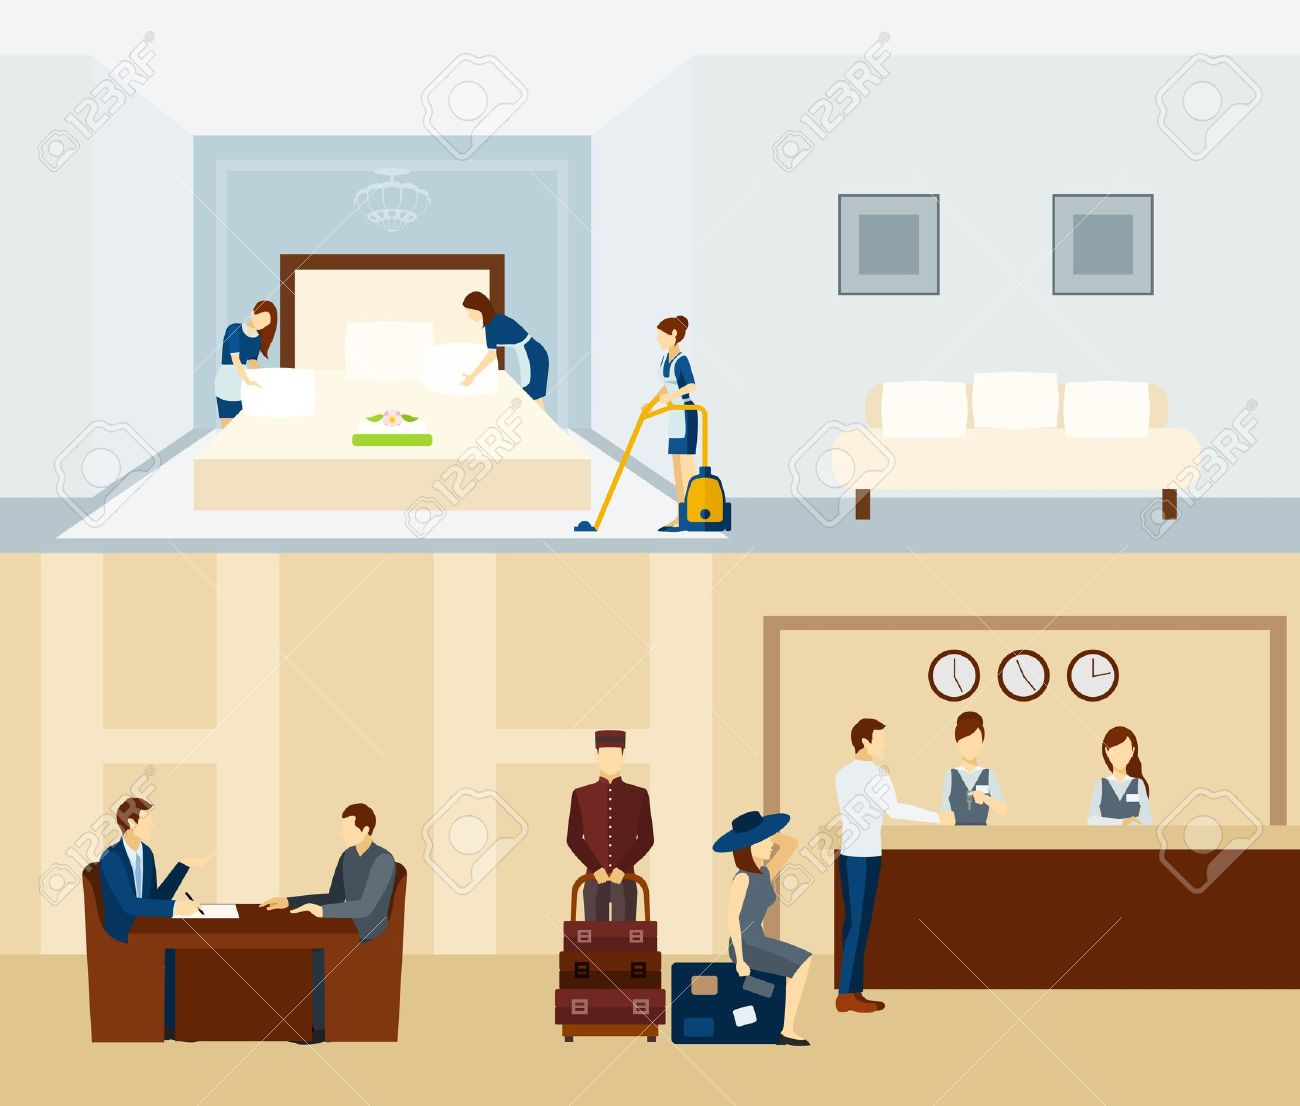 76306 Hotel Stock Vector Illustration And Royalty Free Clipart